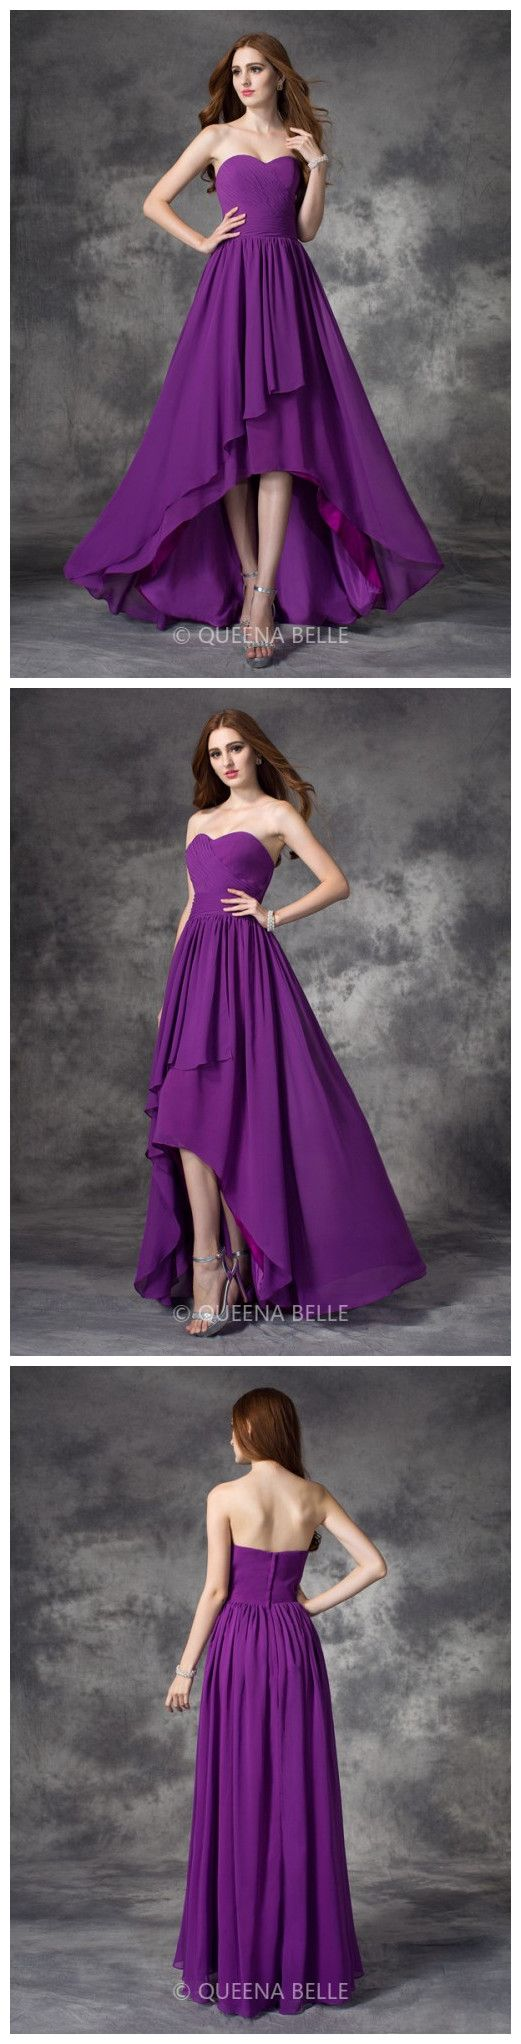 Luxury Purple High Low Bridesmaid Dresses via QueenaBelle! 100% Authentic!